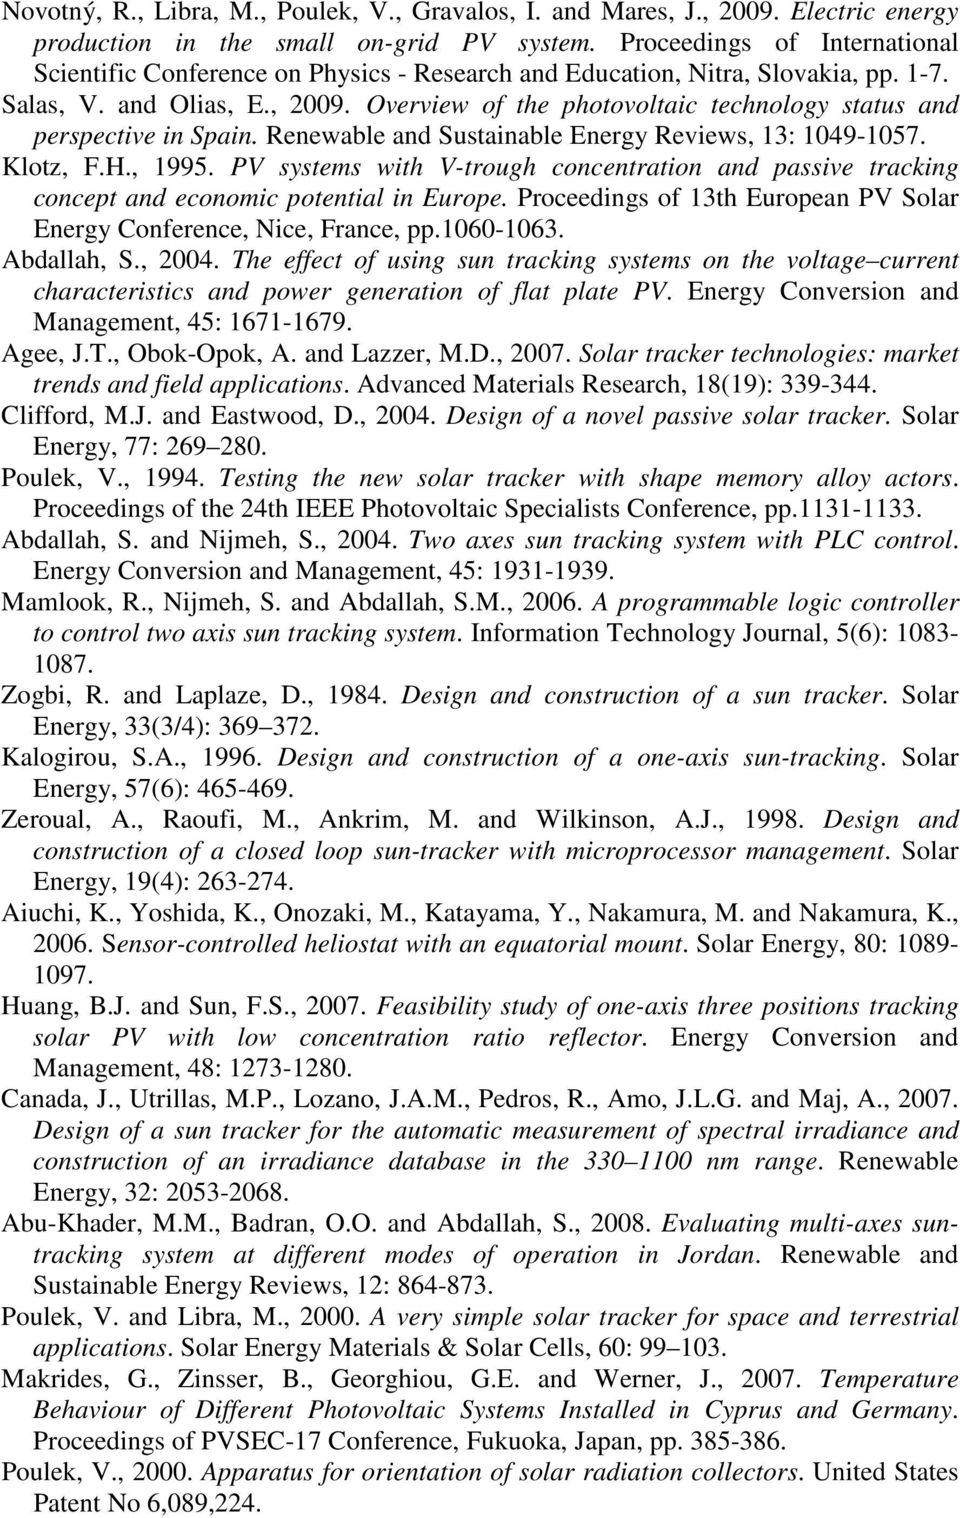 Overview of the photovoltaic technology status and perspective in Spain. Renewable and Sustainable Energy Reviews, 13: 1049-1057. Klotz, F.H., 1995.